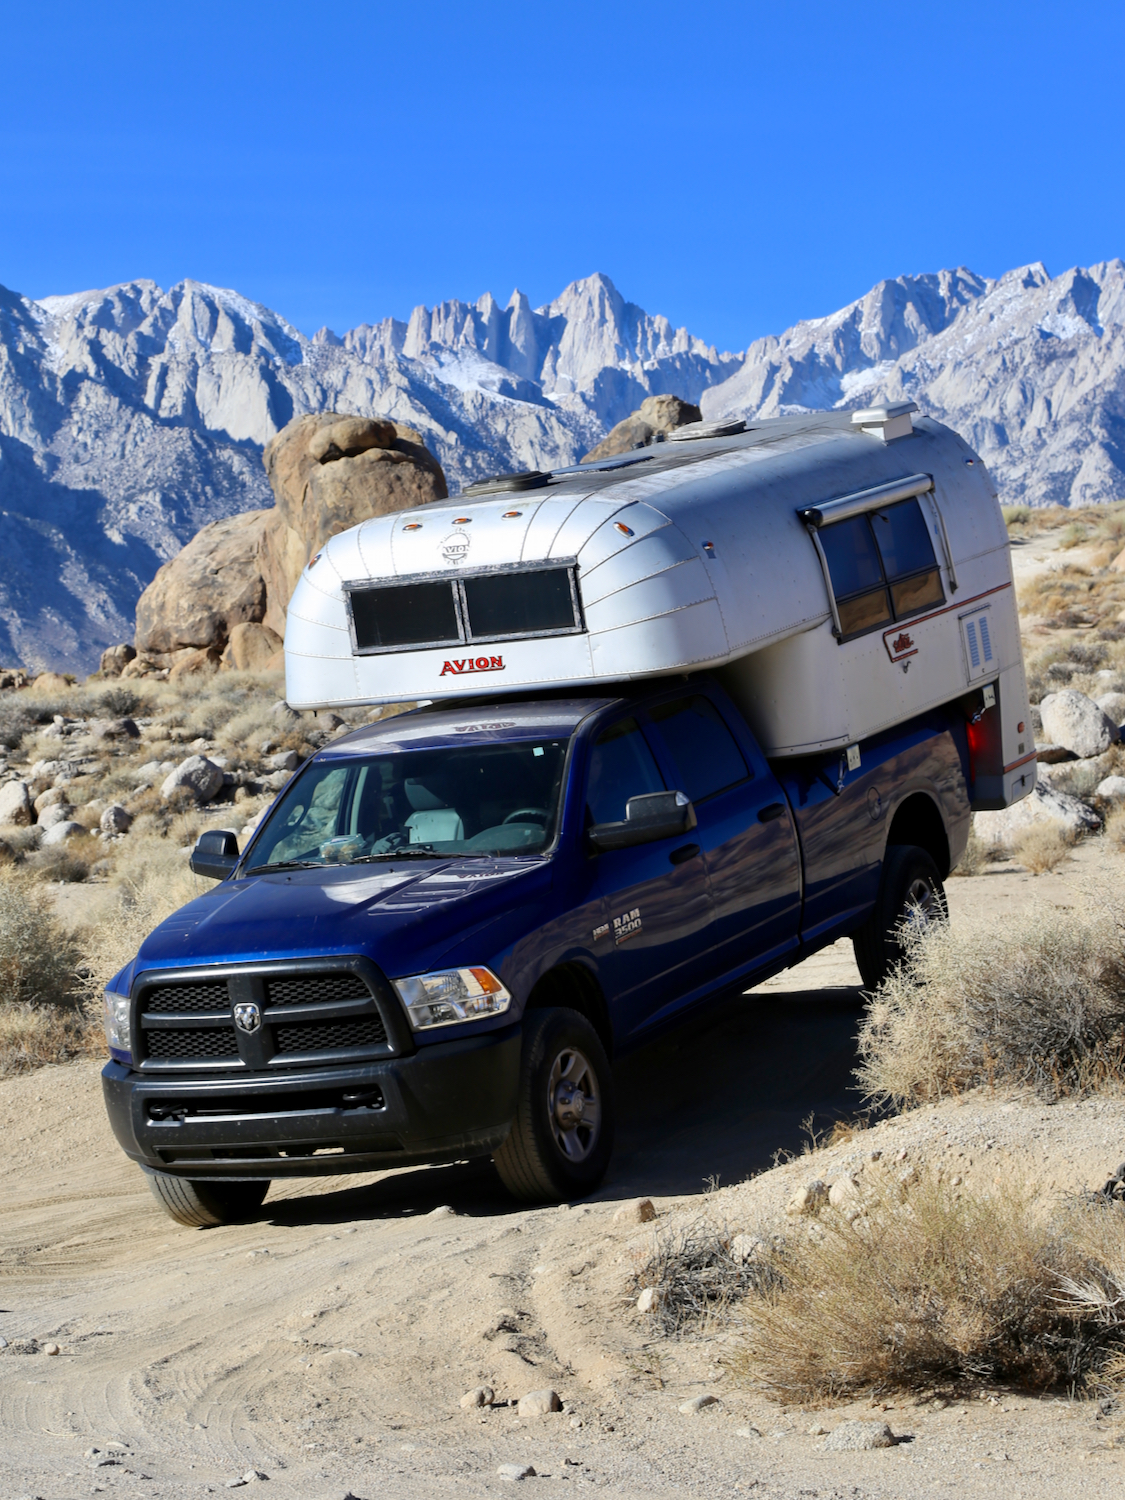 Aluminum truck camper on a blue truck exploring the Eastern Sierras of California